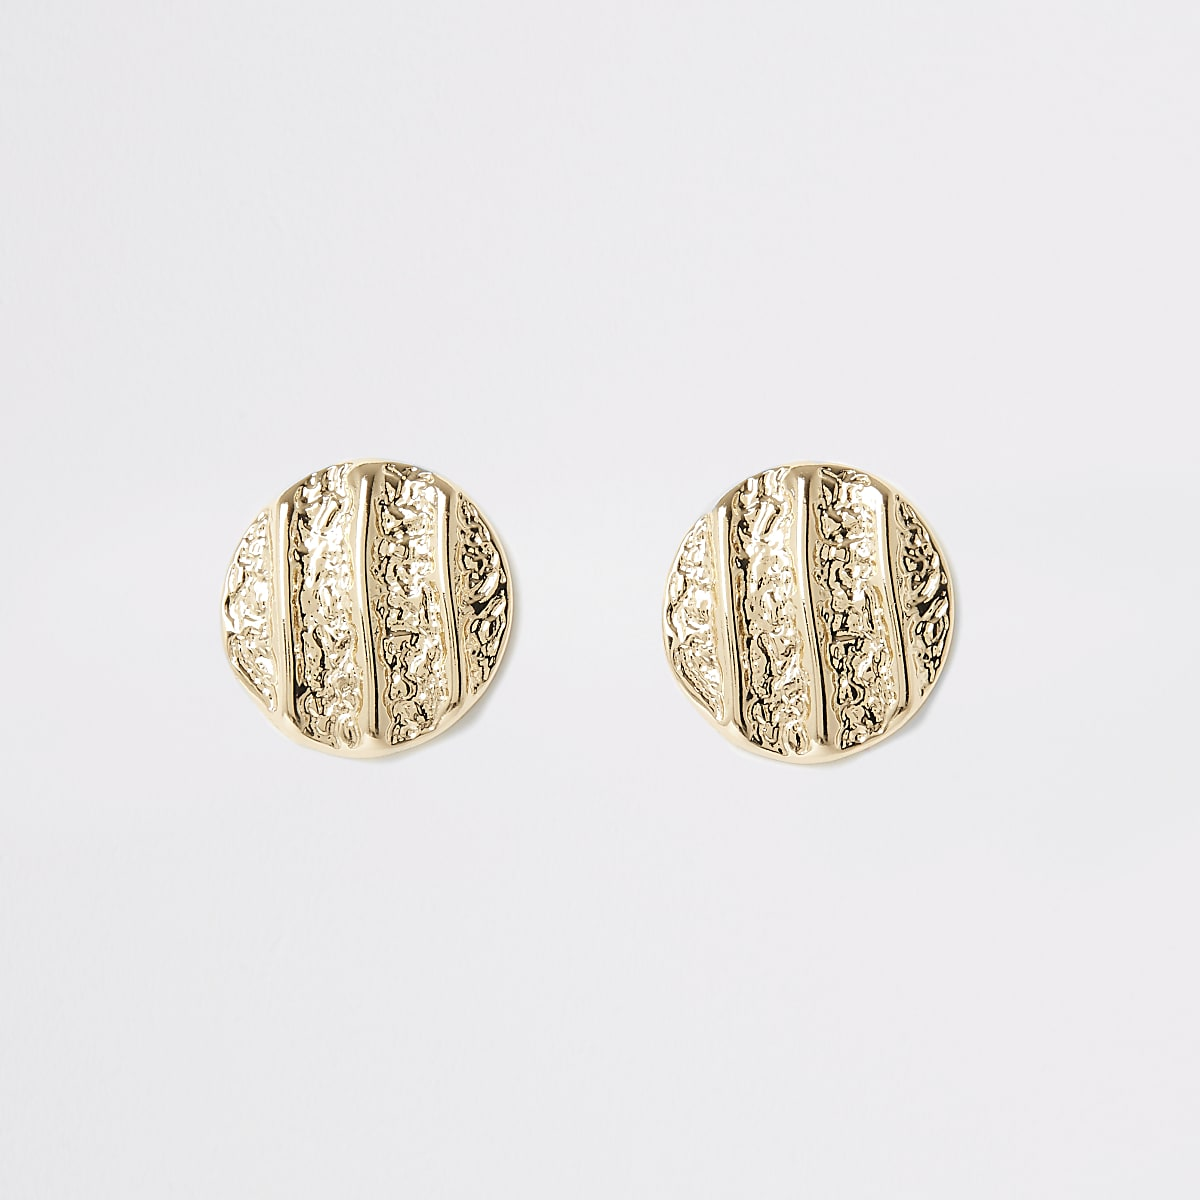 Gold colour textured stud earrings